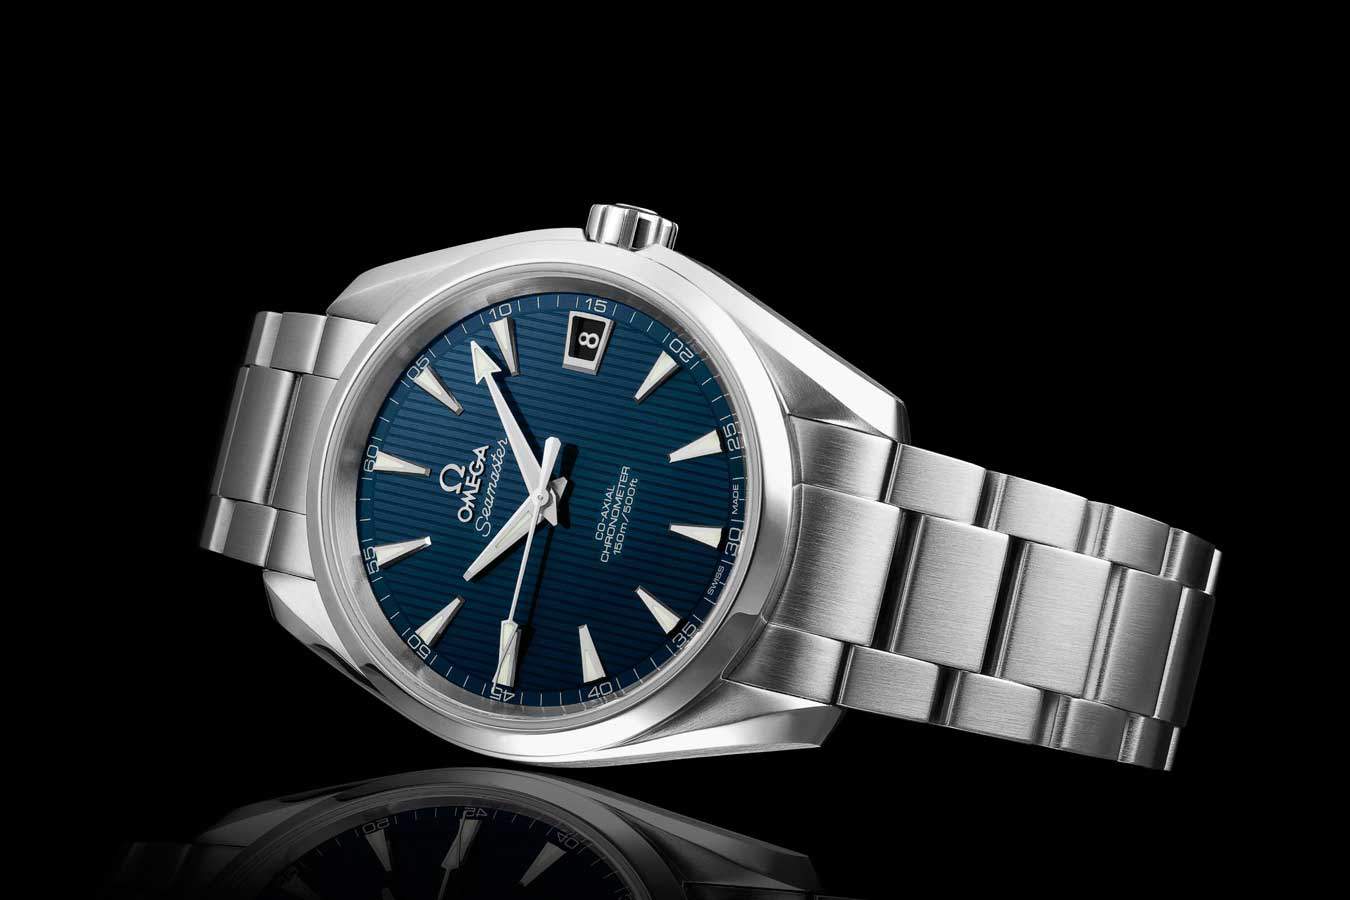 Omega Seamaster Aqua Terra 150M worn by Bond in Skyfall (2012)